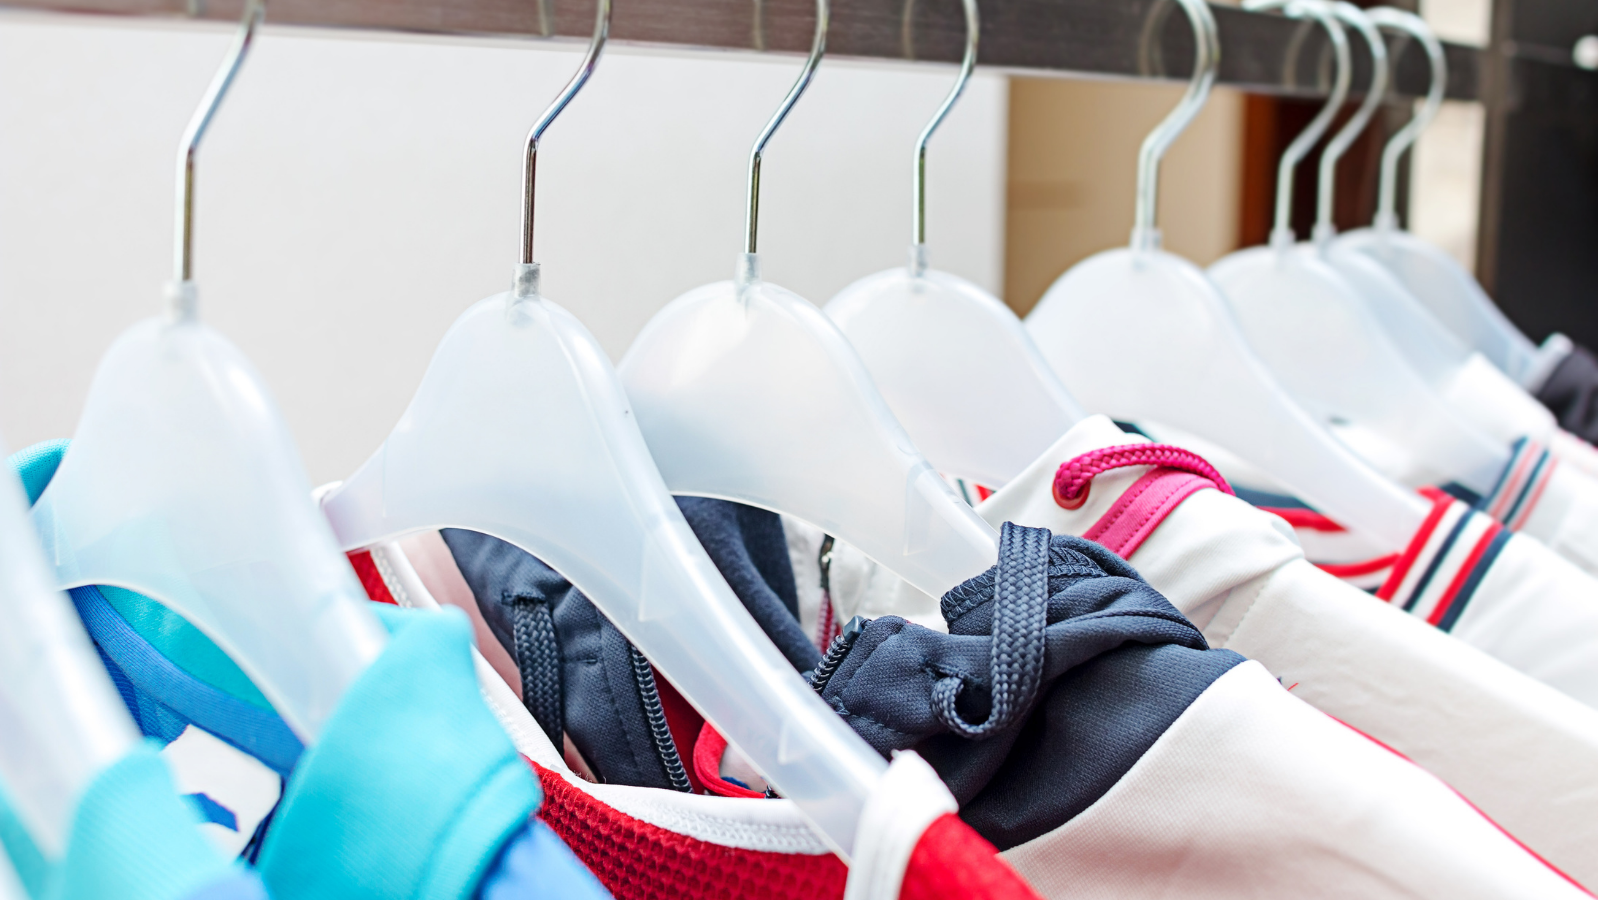 Why and How Should Per- and Polyfluoroalkyl substances (PFAS)  Be Regulated in Textiles?